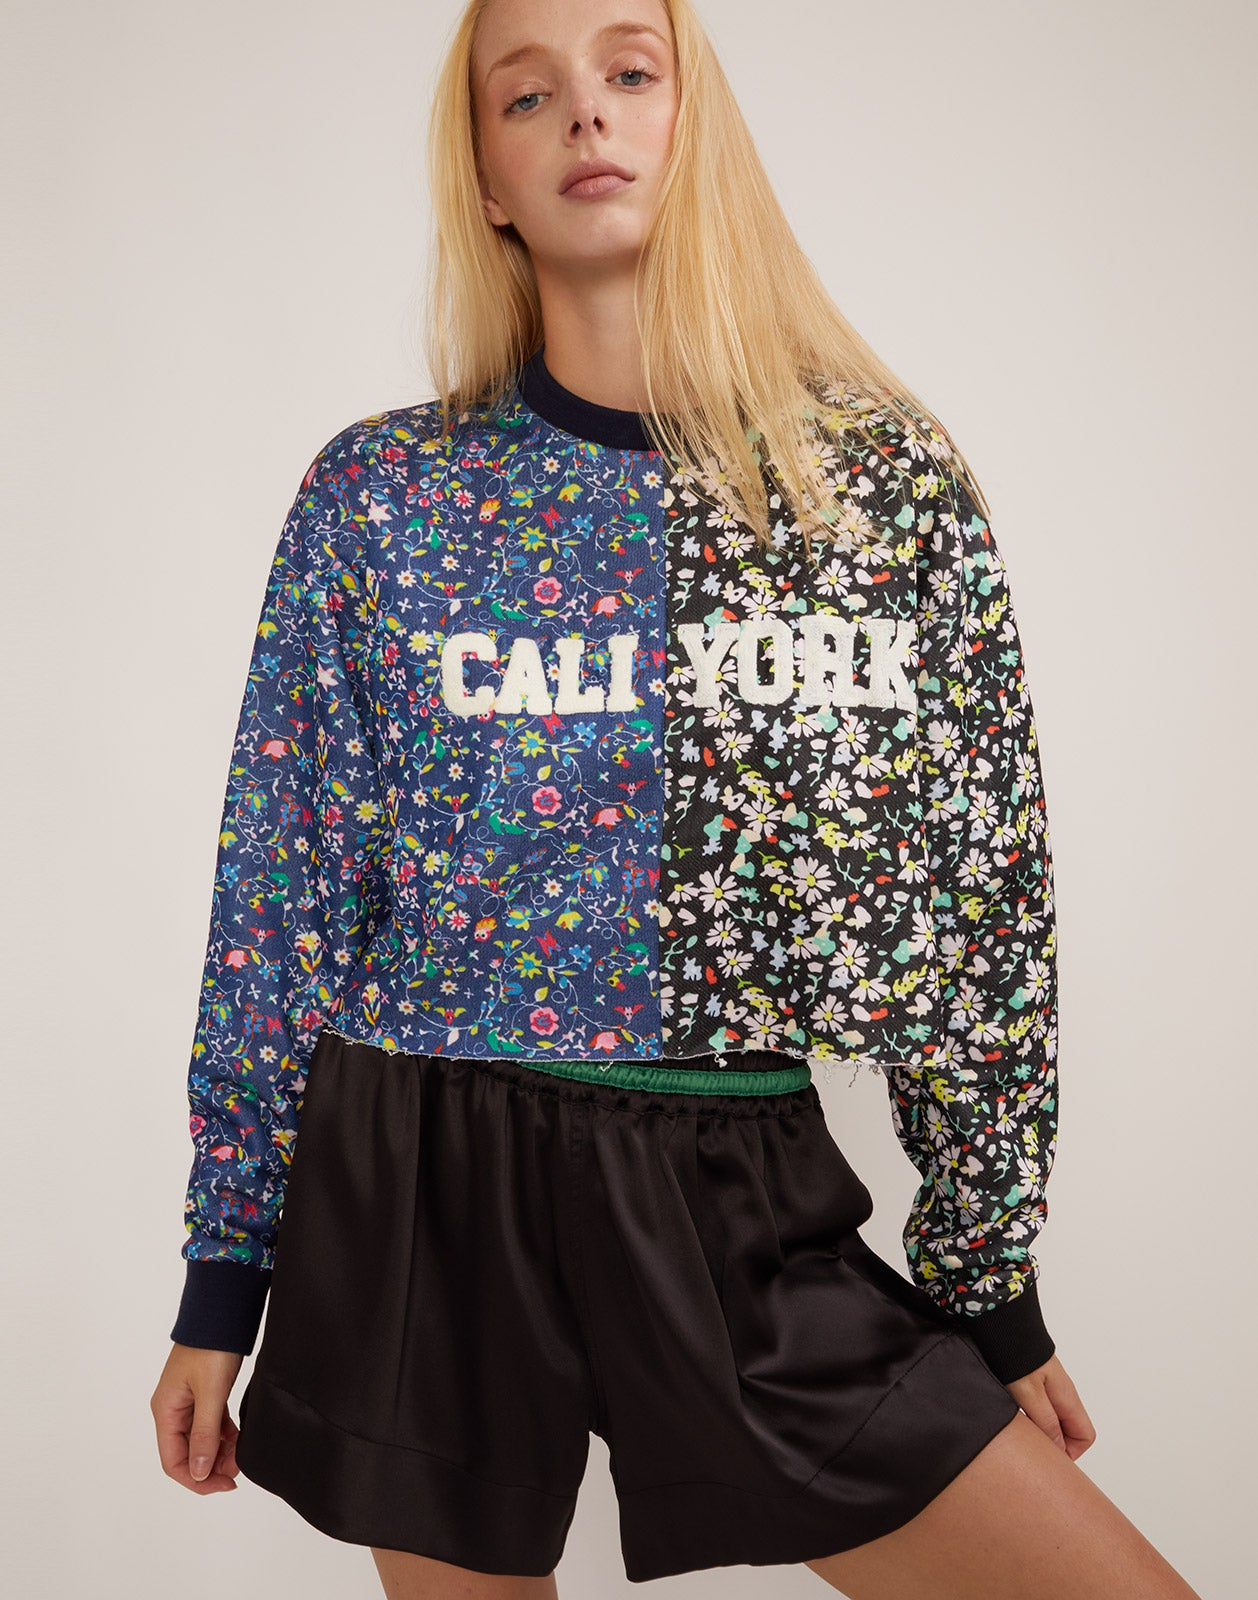 Alternate front view of the CRxBandier CaliYork cropped sweatshirt in mini floral print.